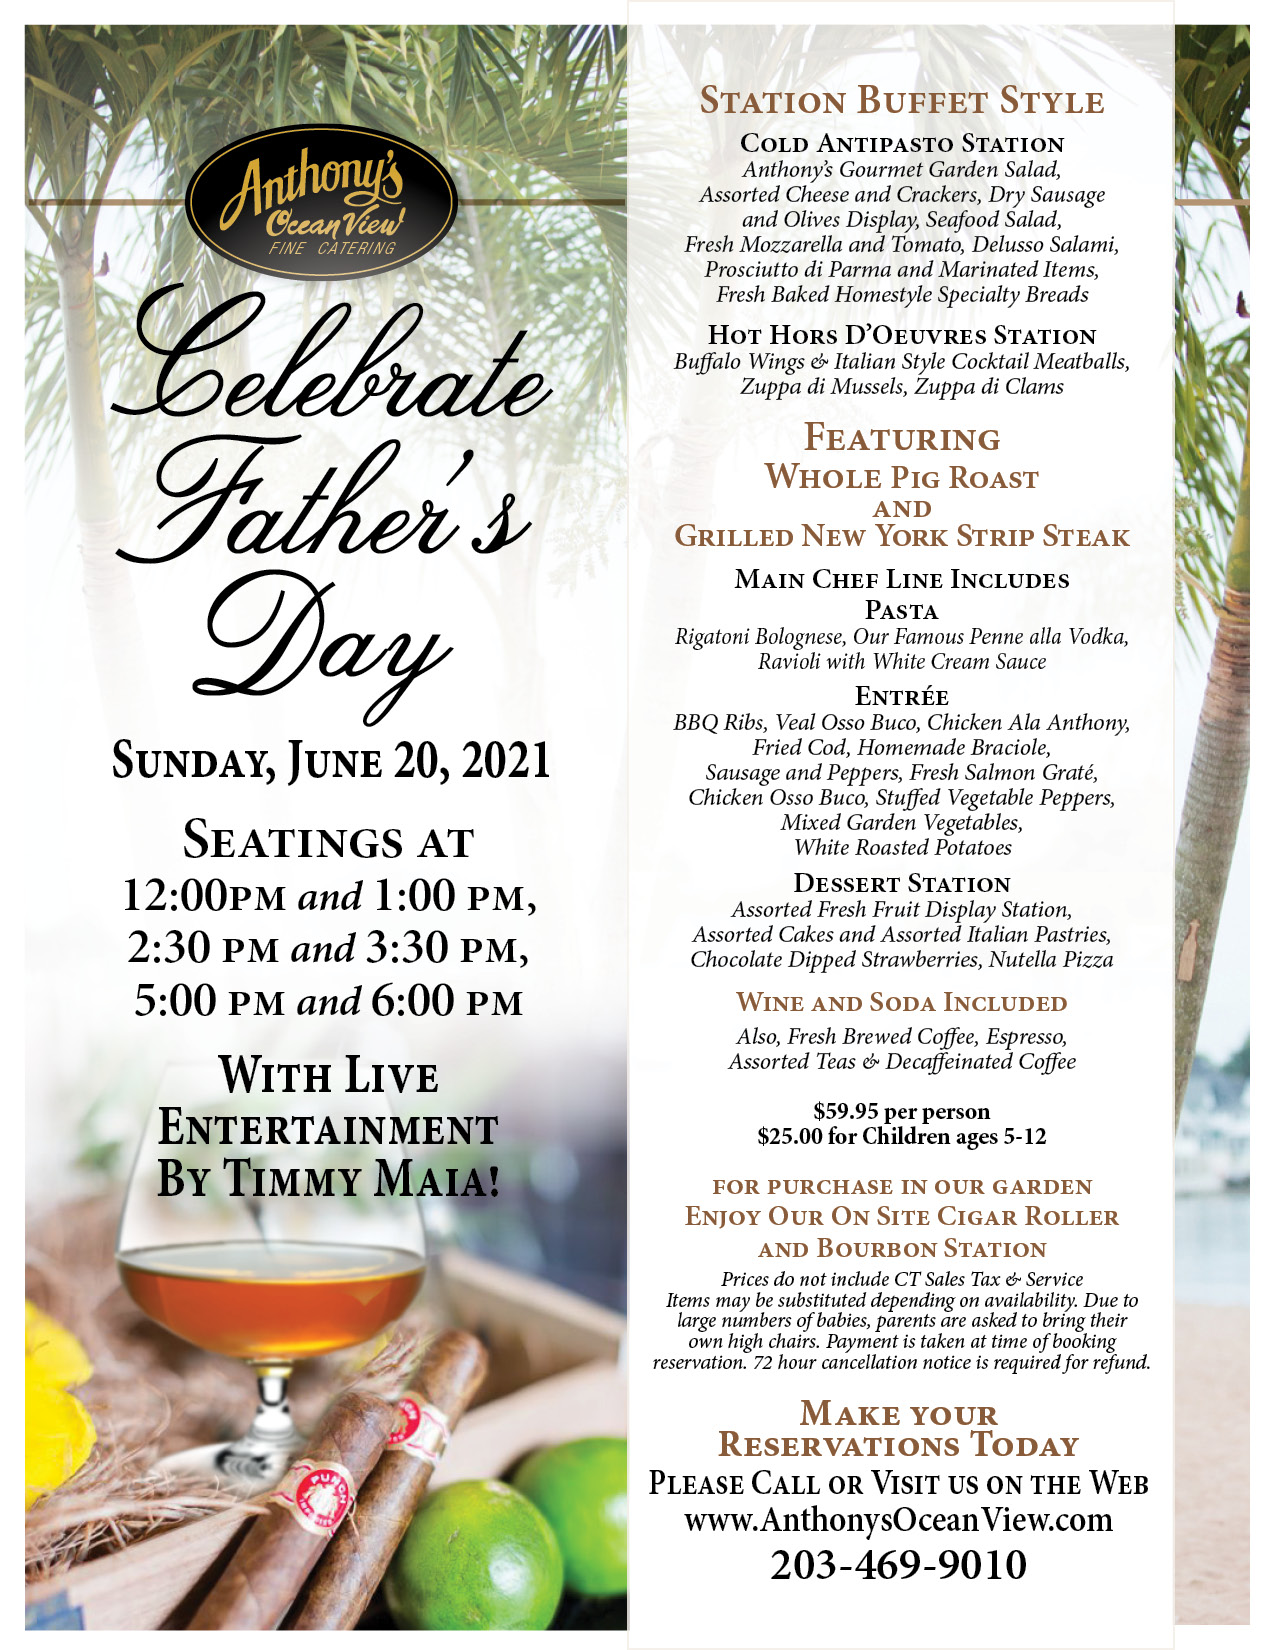 Fathers Day Brunch, Fathers Day lunch Specials, Outdoor Dining, Indoor Dining, Fathers Day 2021